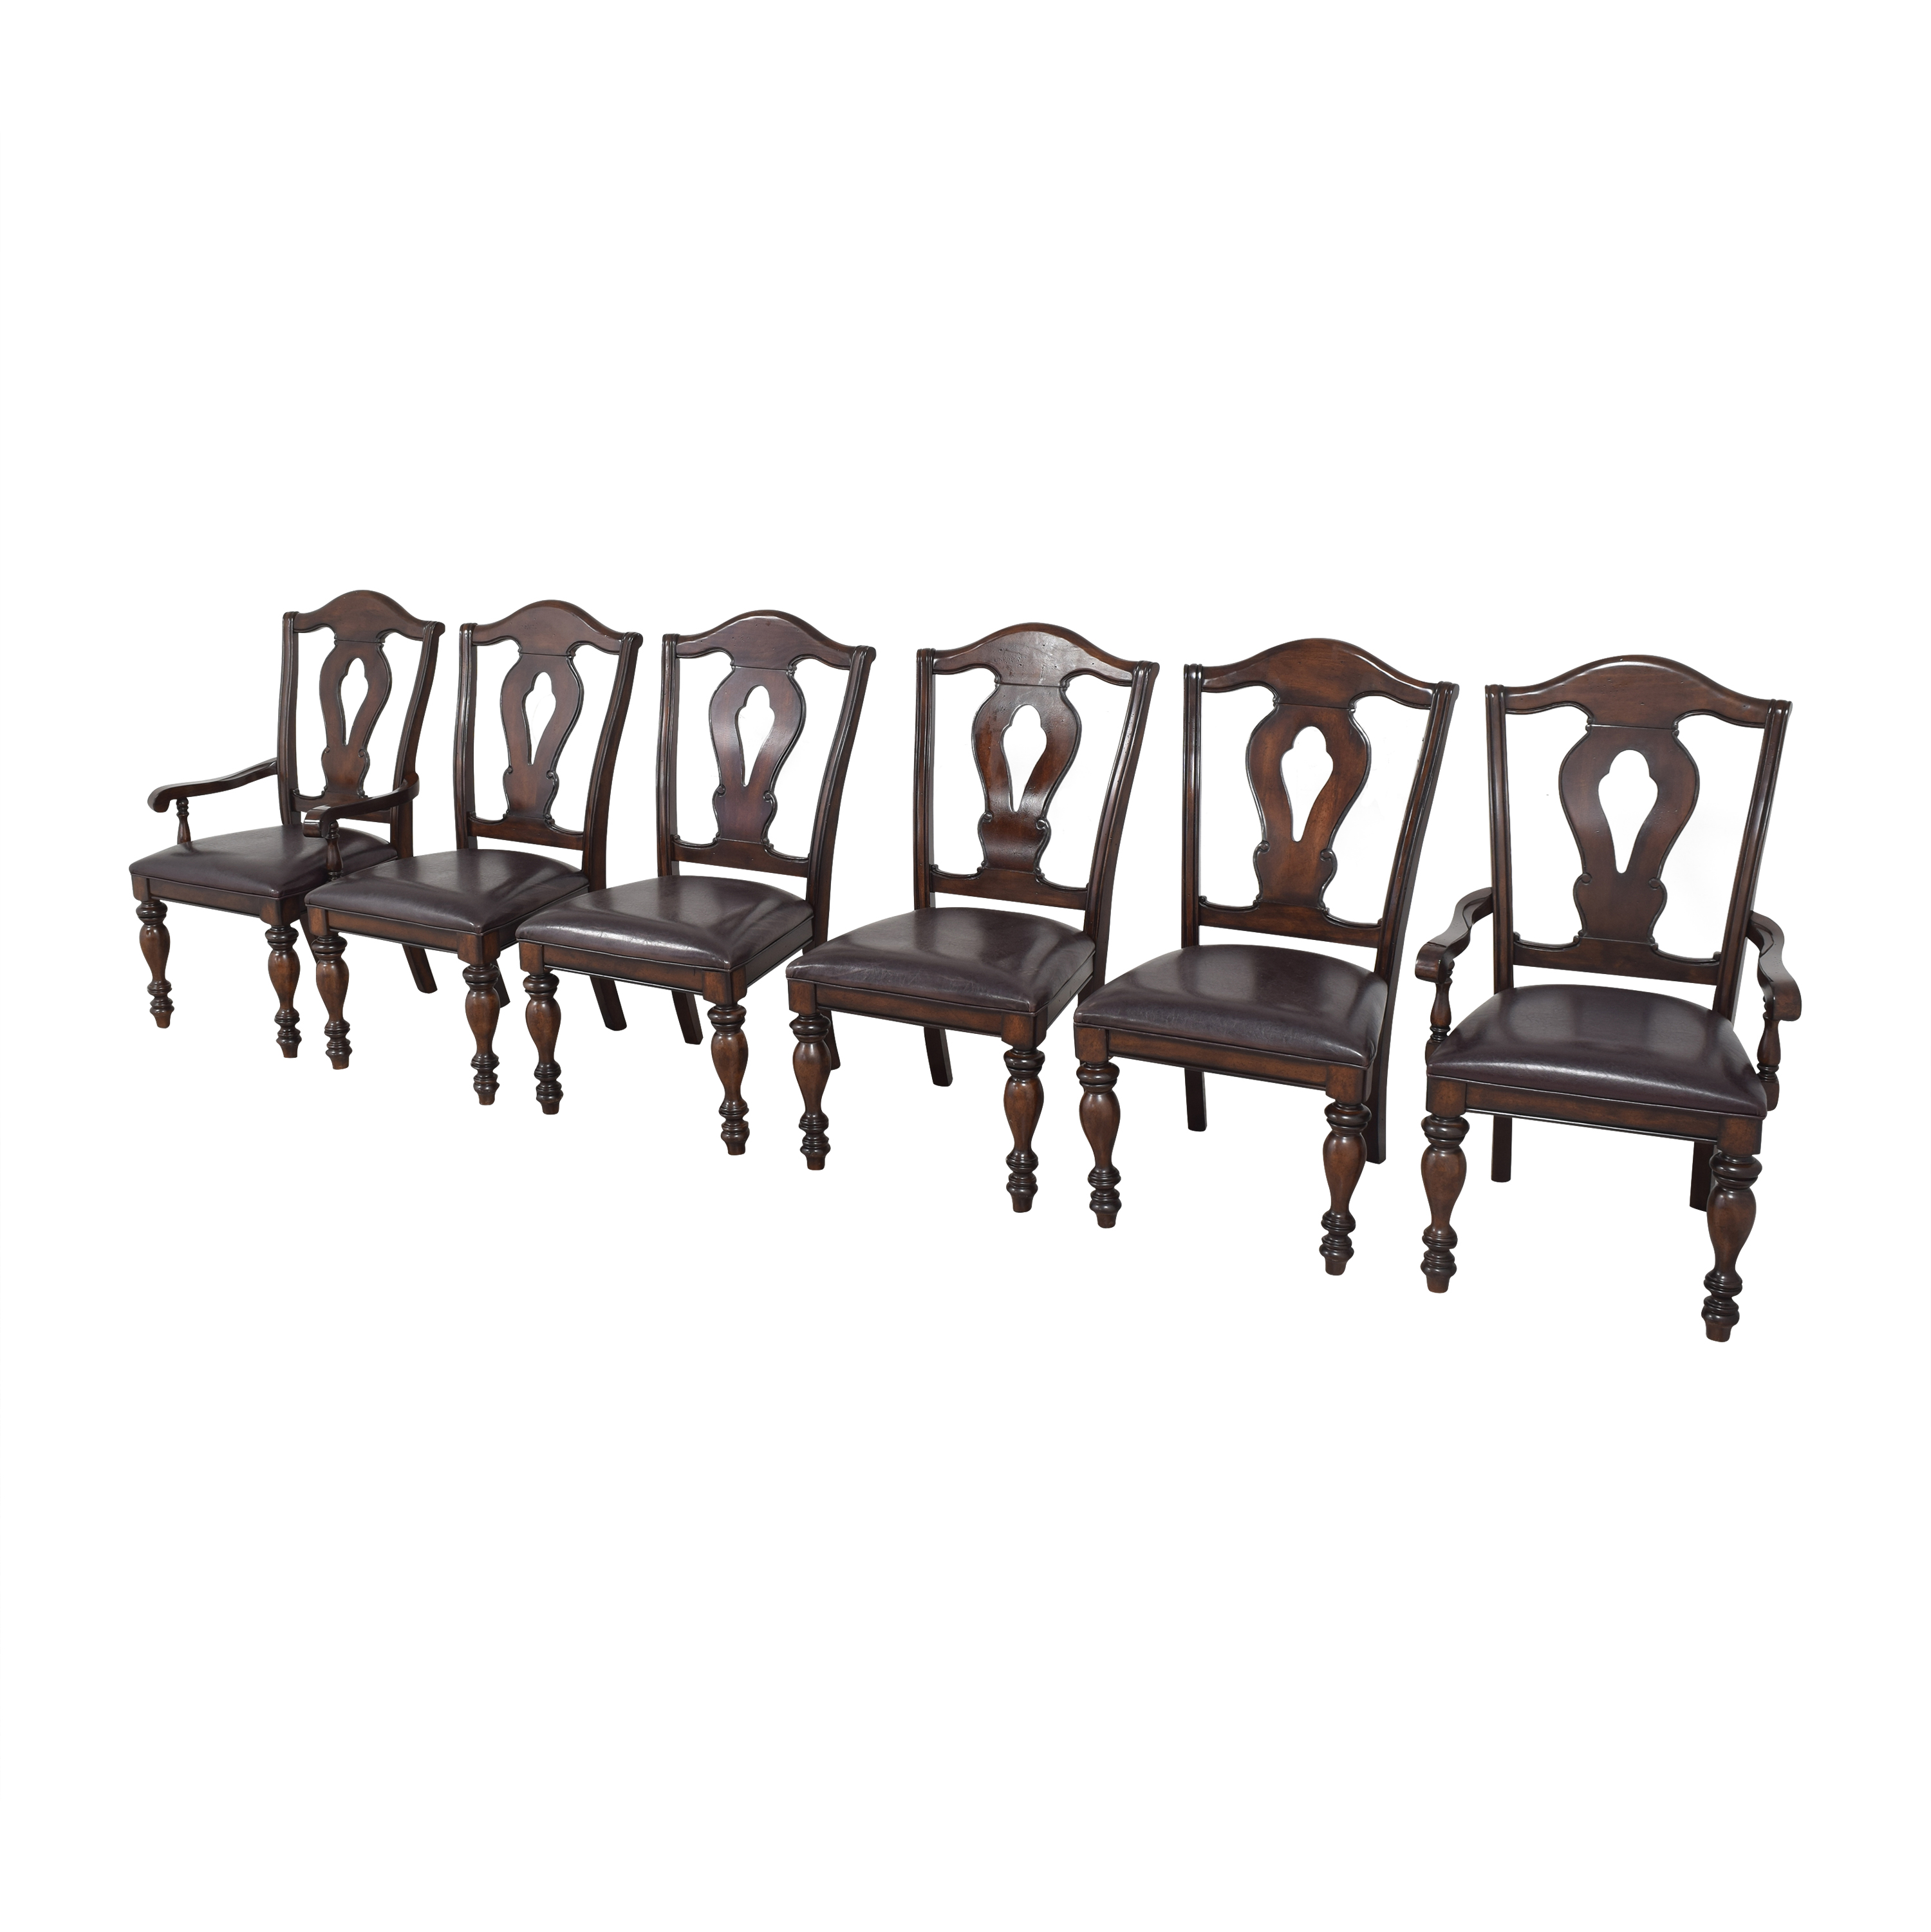 Legacy Classic Furniture Legacy Classic Furniture Dining Chairs for sale